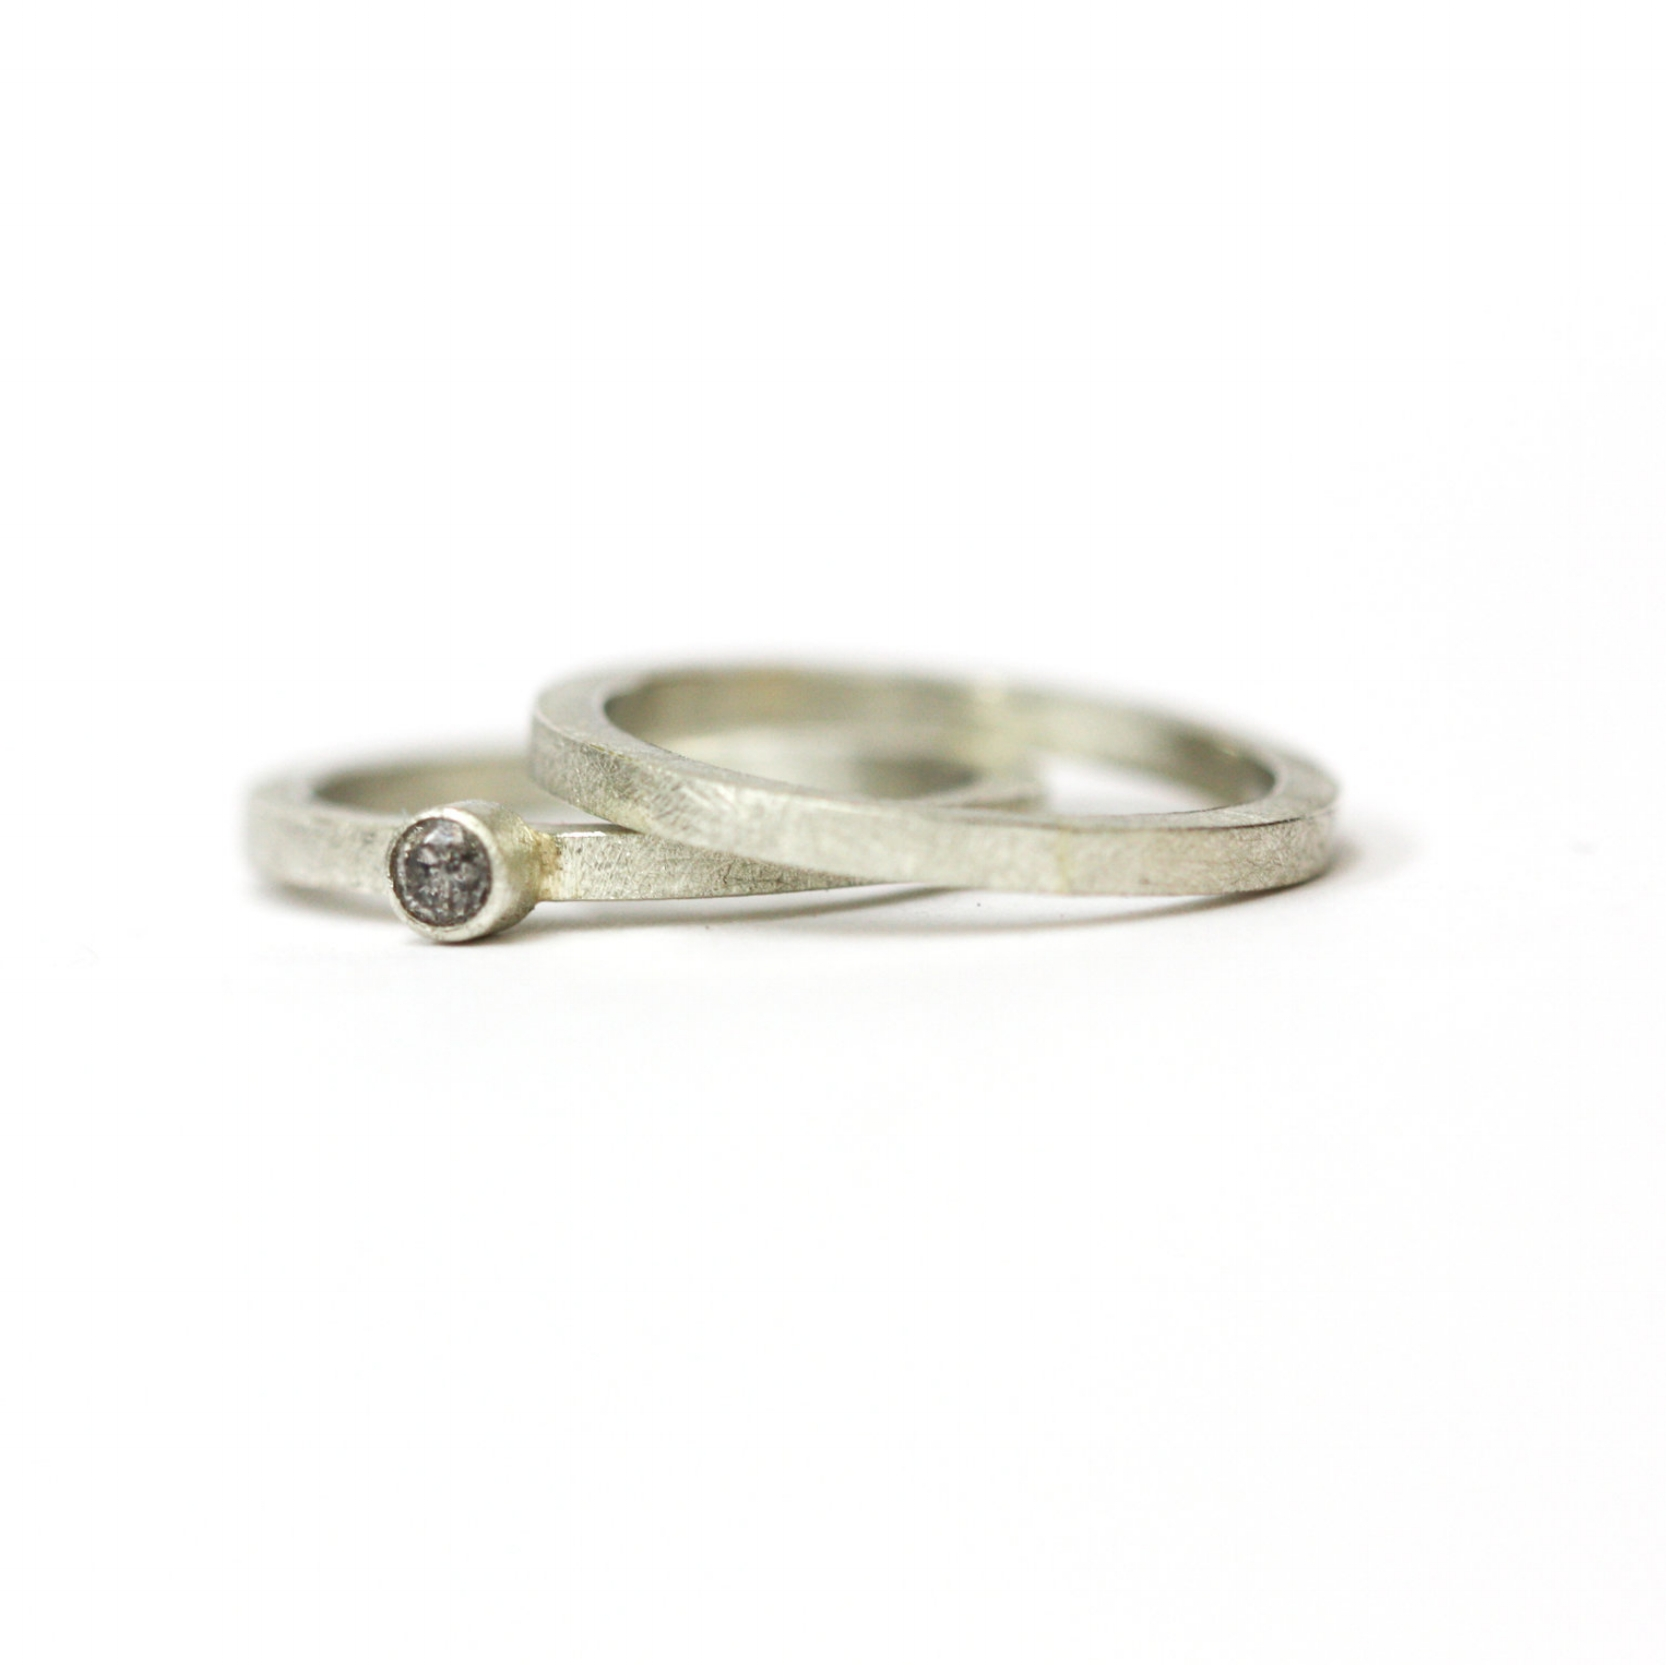 Wedding & Engagement Sets  This pair of rings is made from 9ct White gold with a simple speckled grey diamond set centrally on one of the bands.